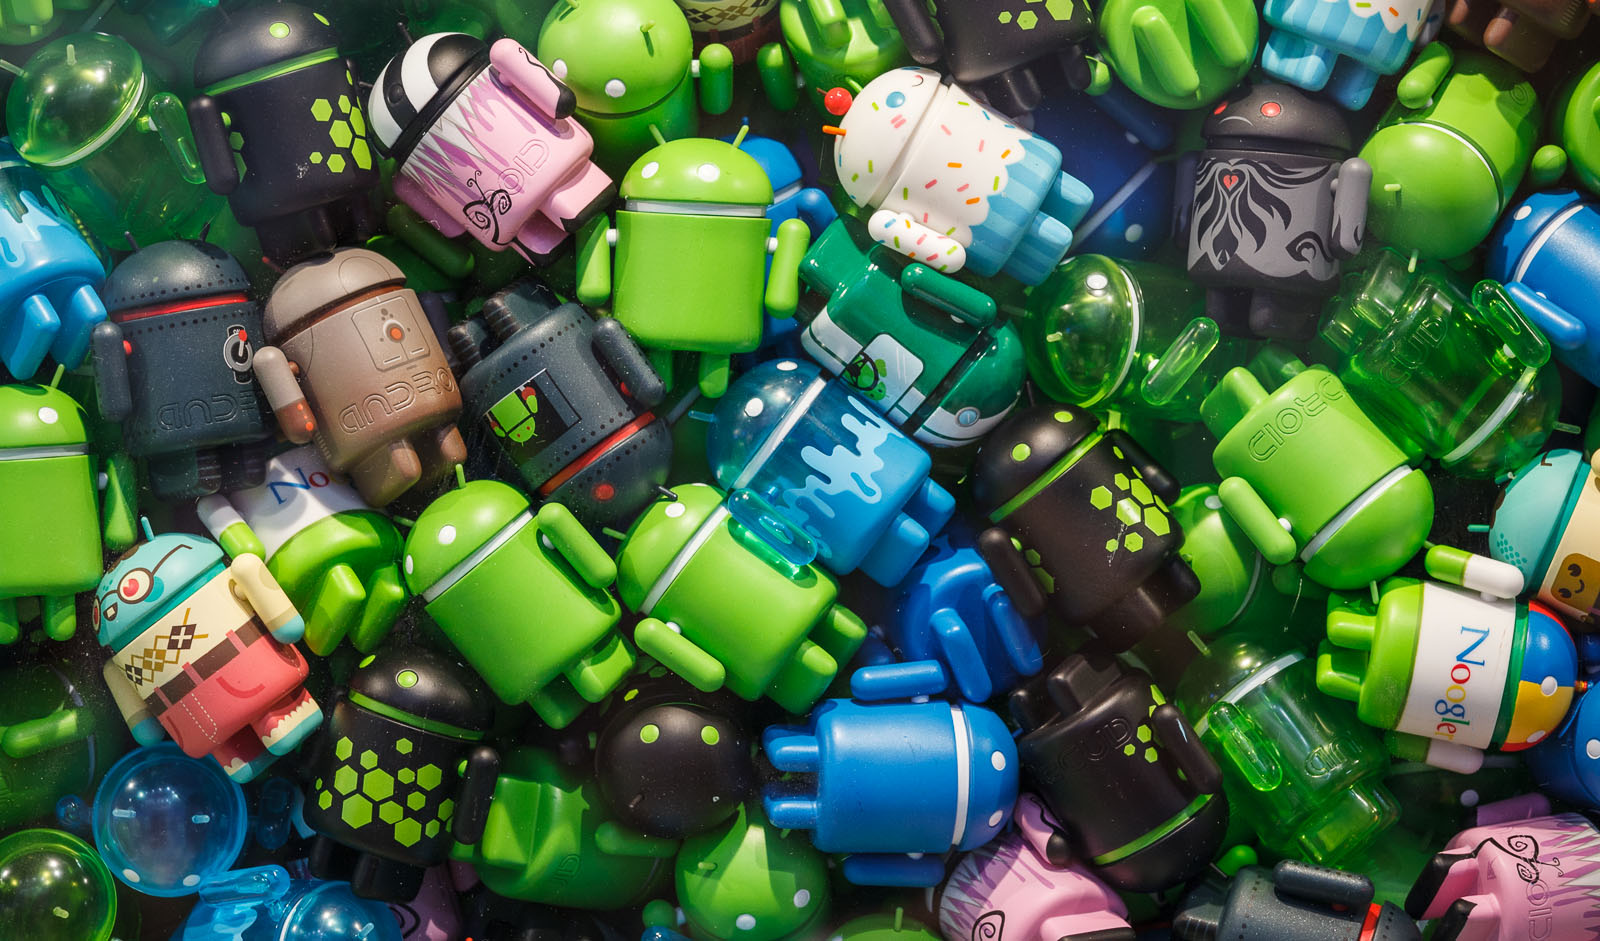 Android and Web programming are the top priorities at the Google I/O conference.